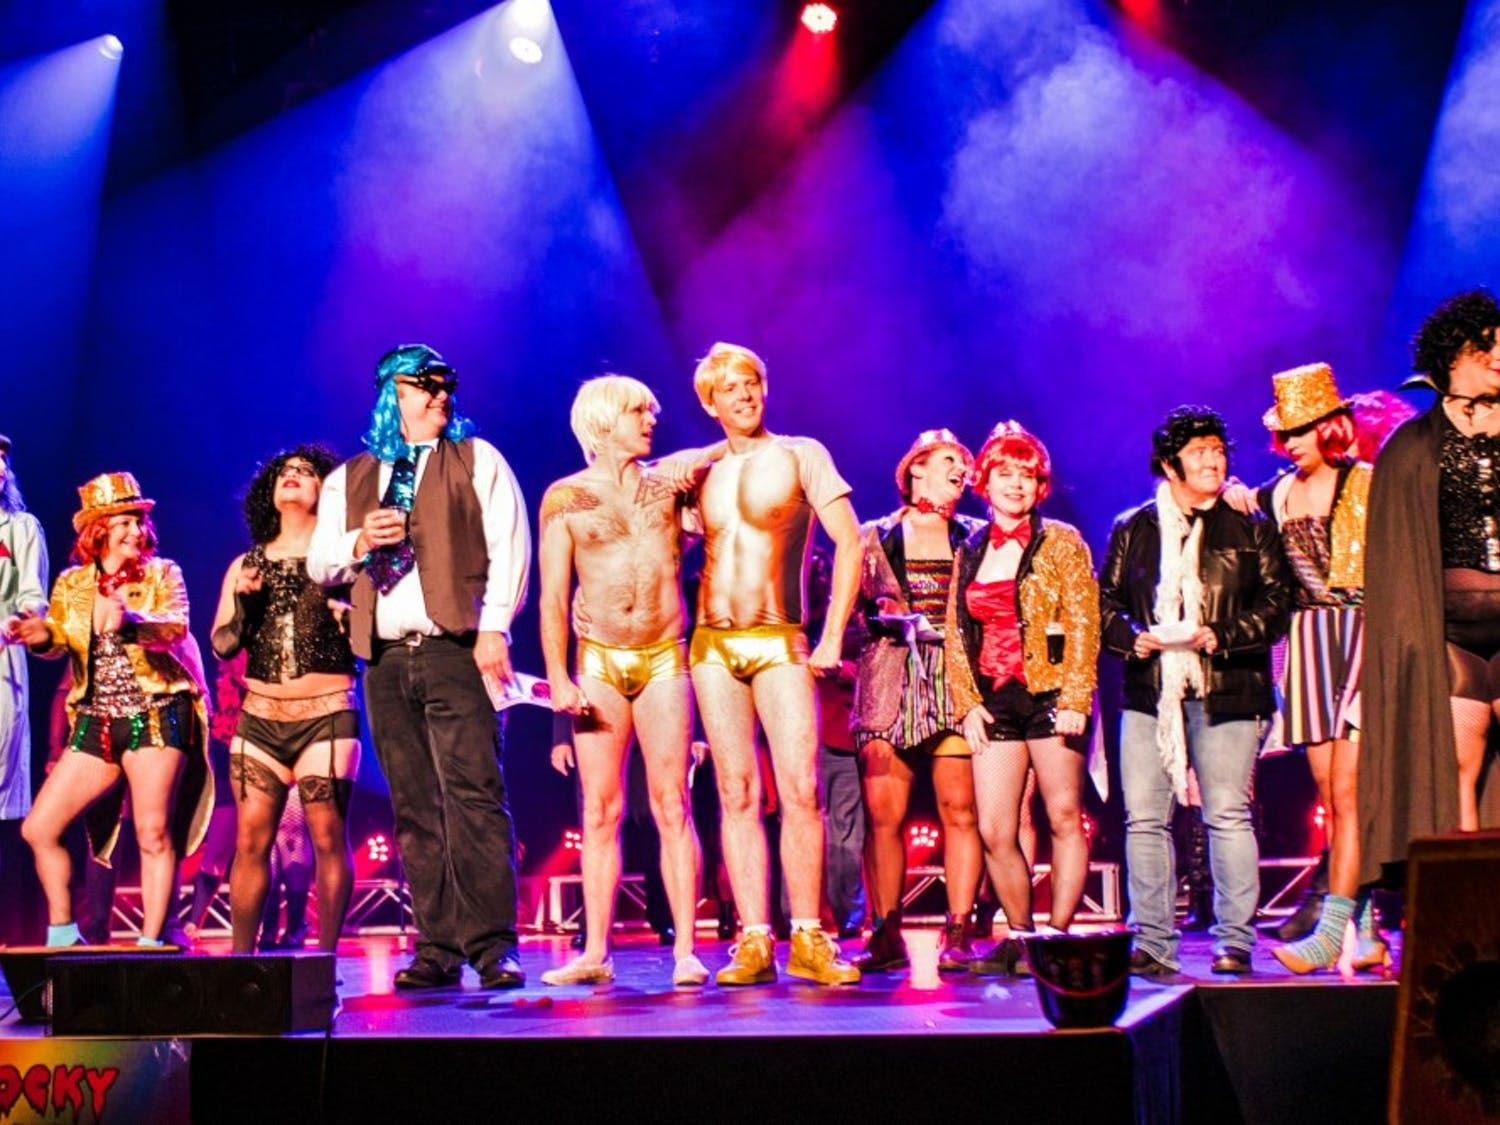 Contestants of the costume contest and actors of the Francis Bacon experiment on stage.